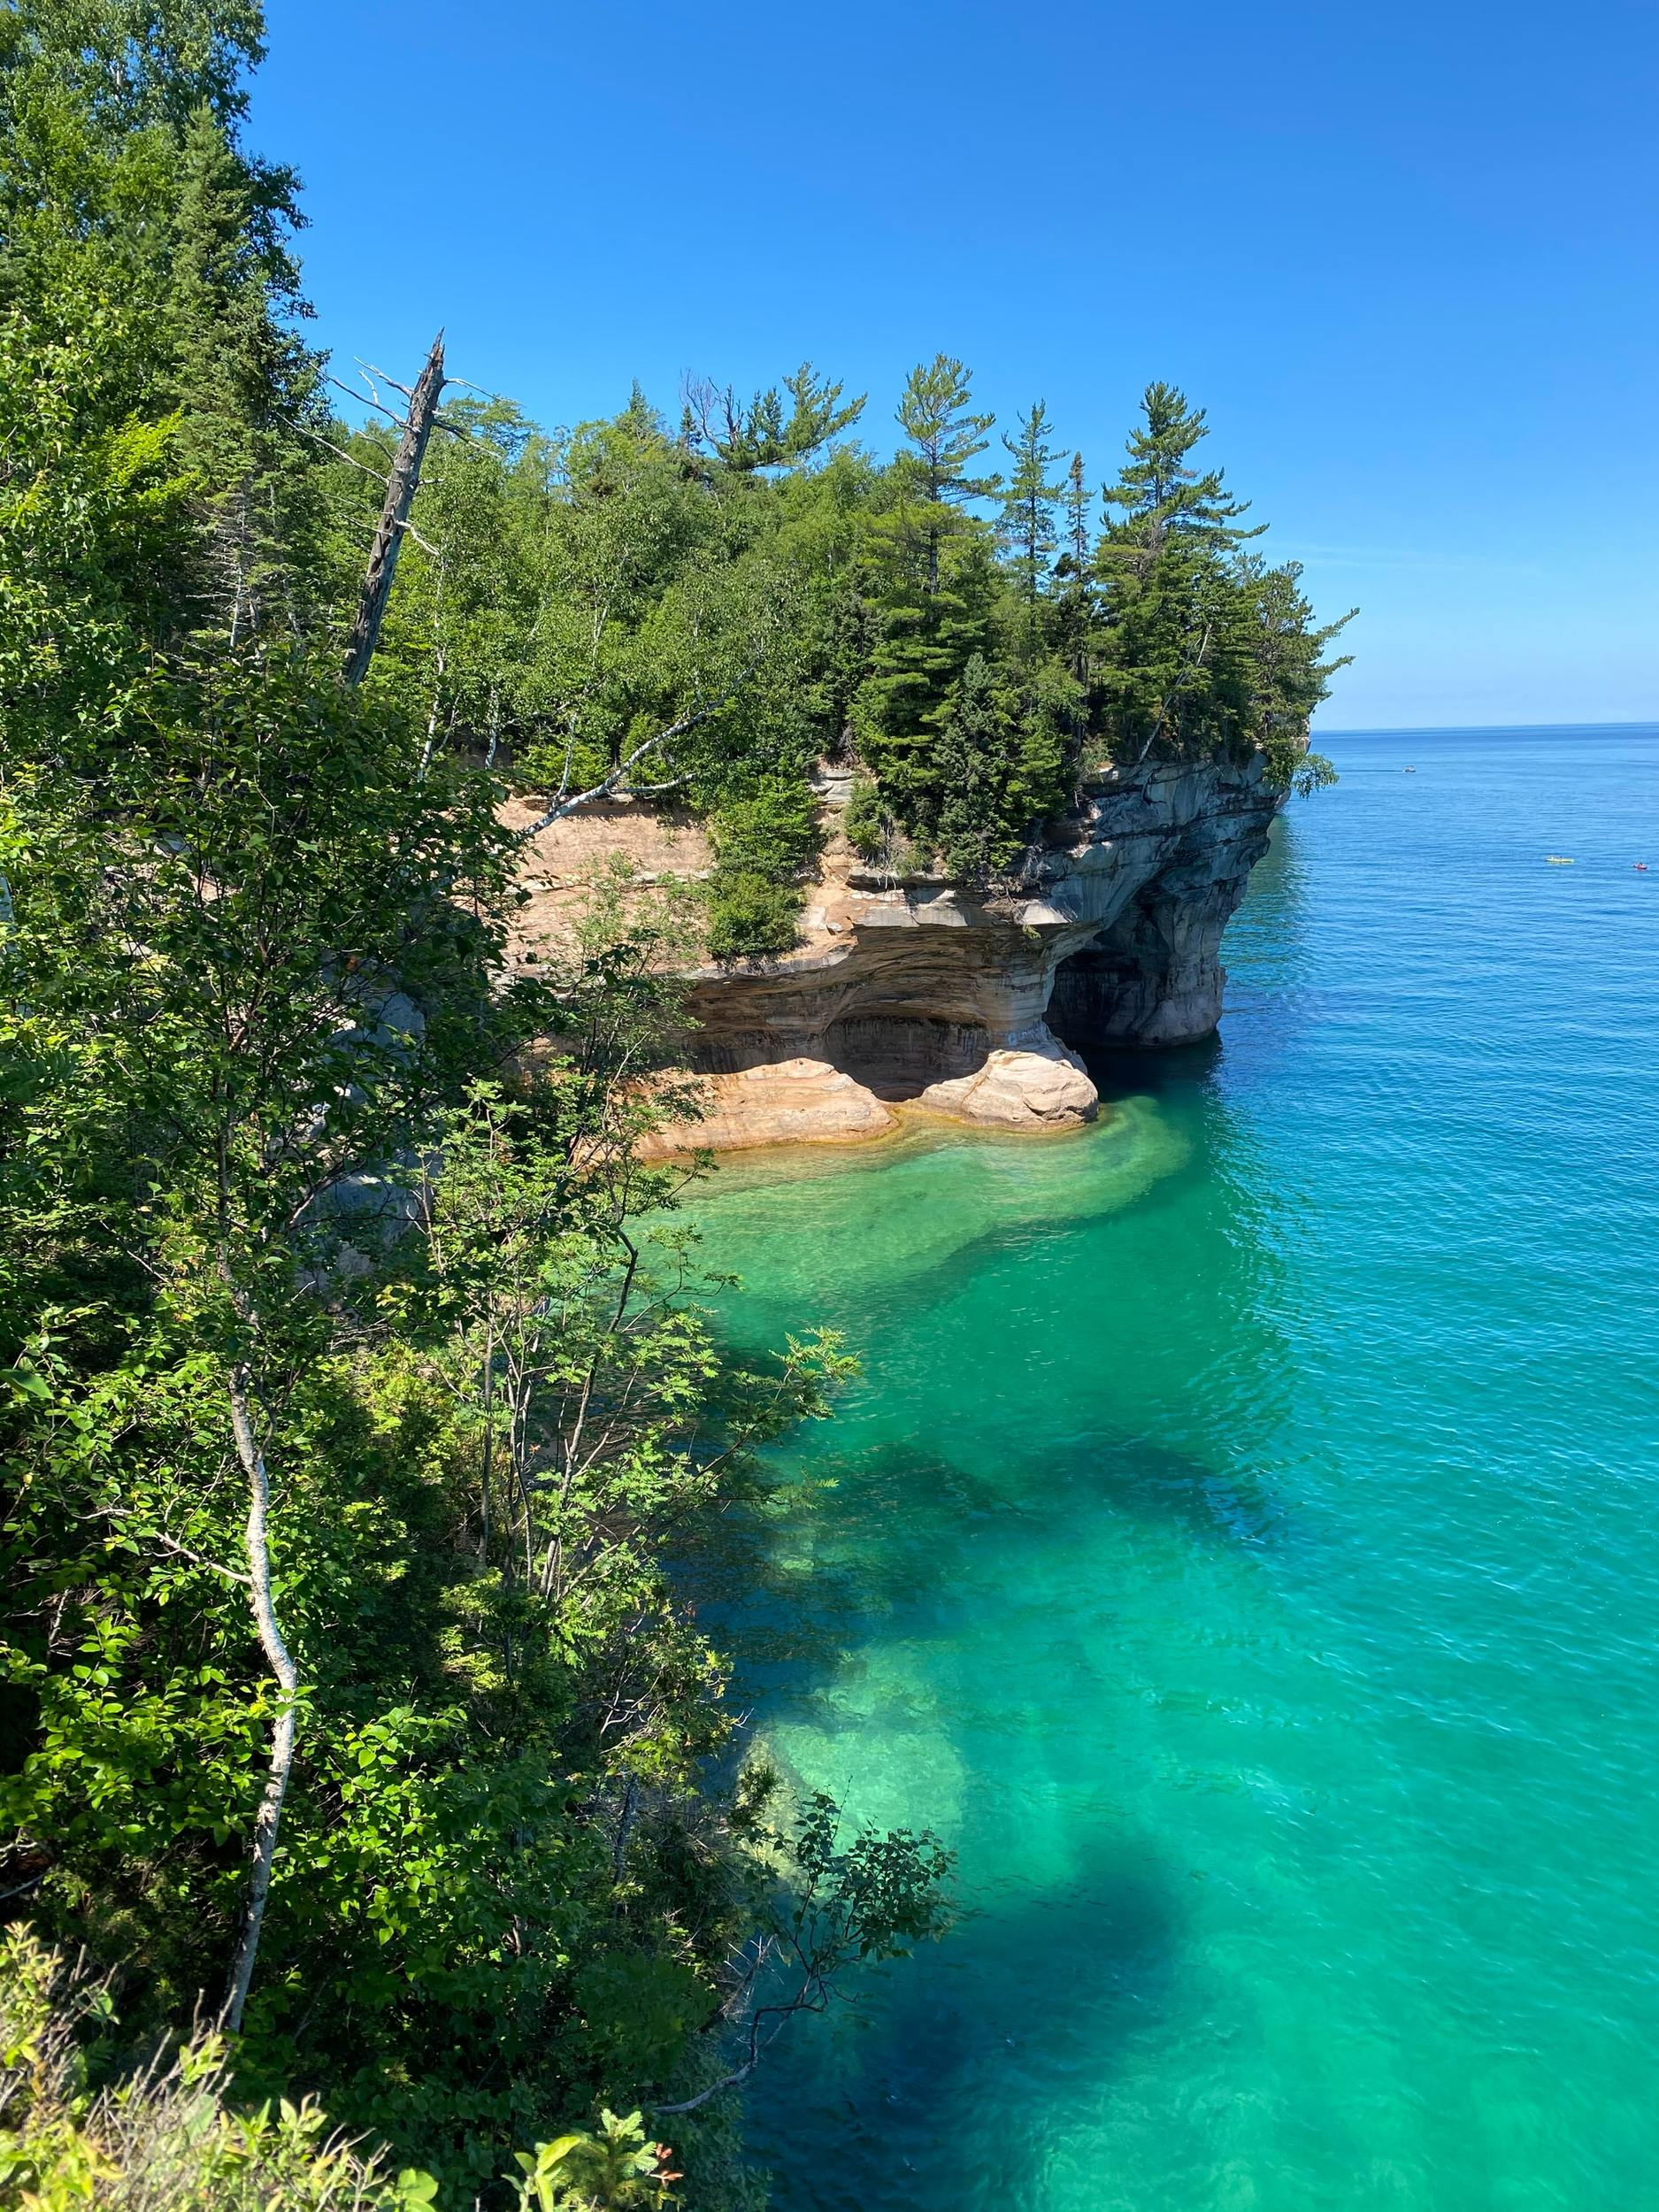 20 of the Absolute Best Places to Visit in Michigan